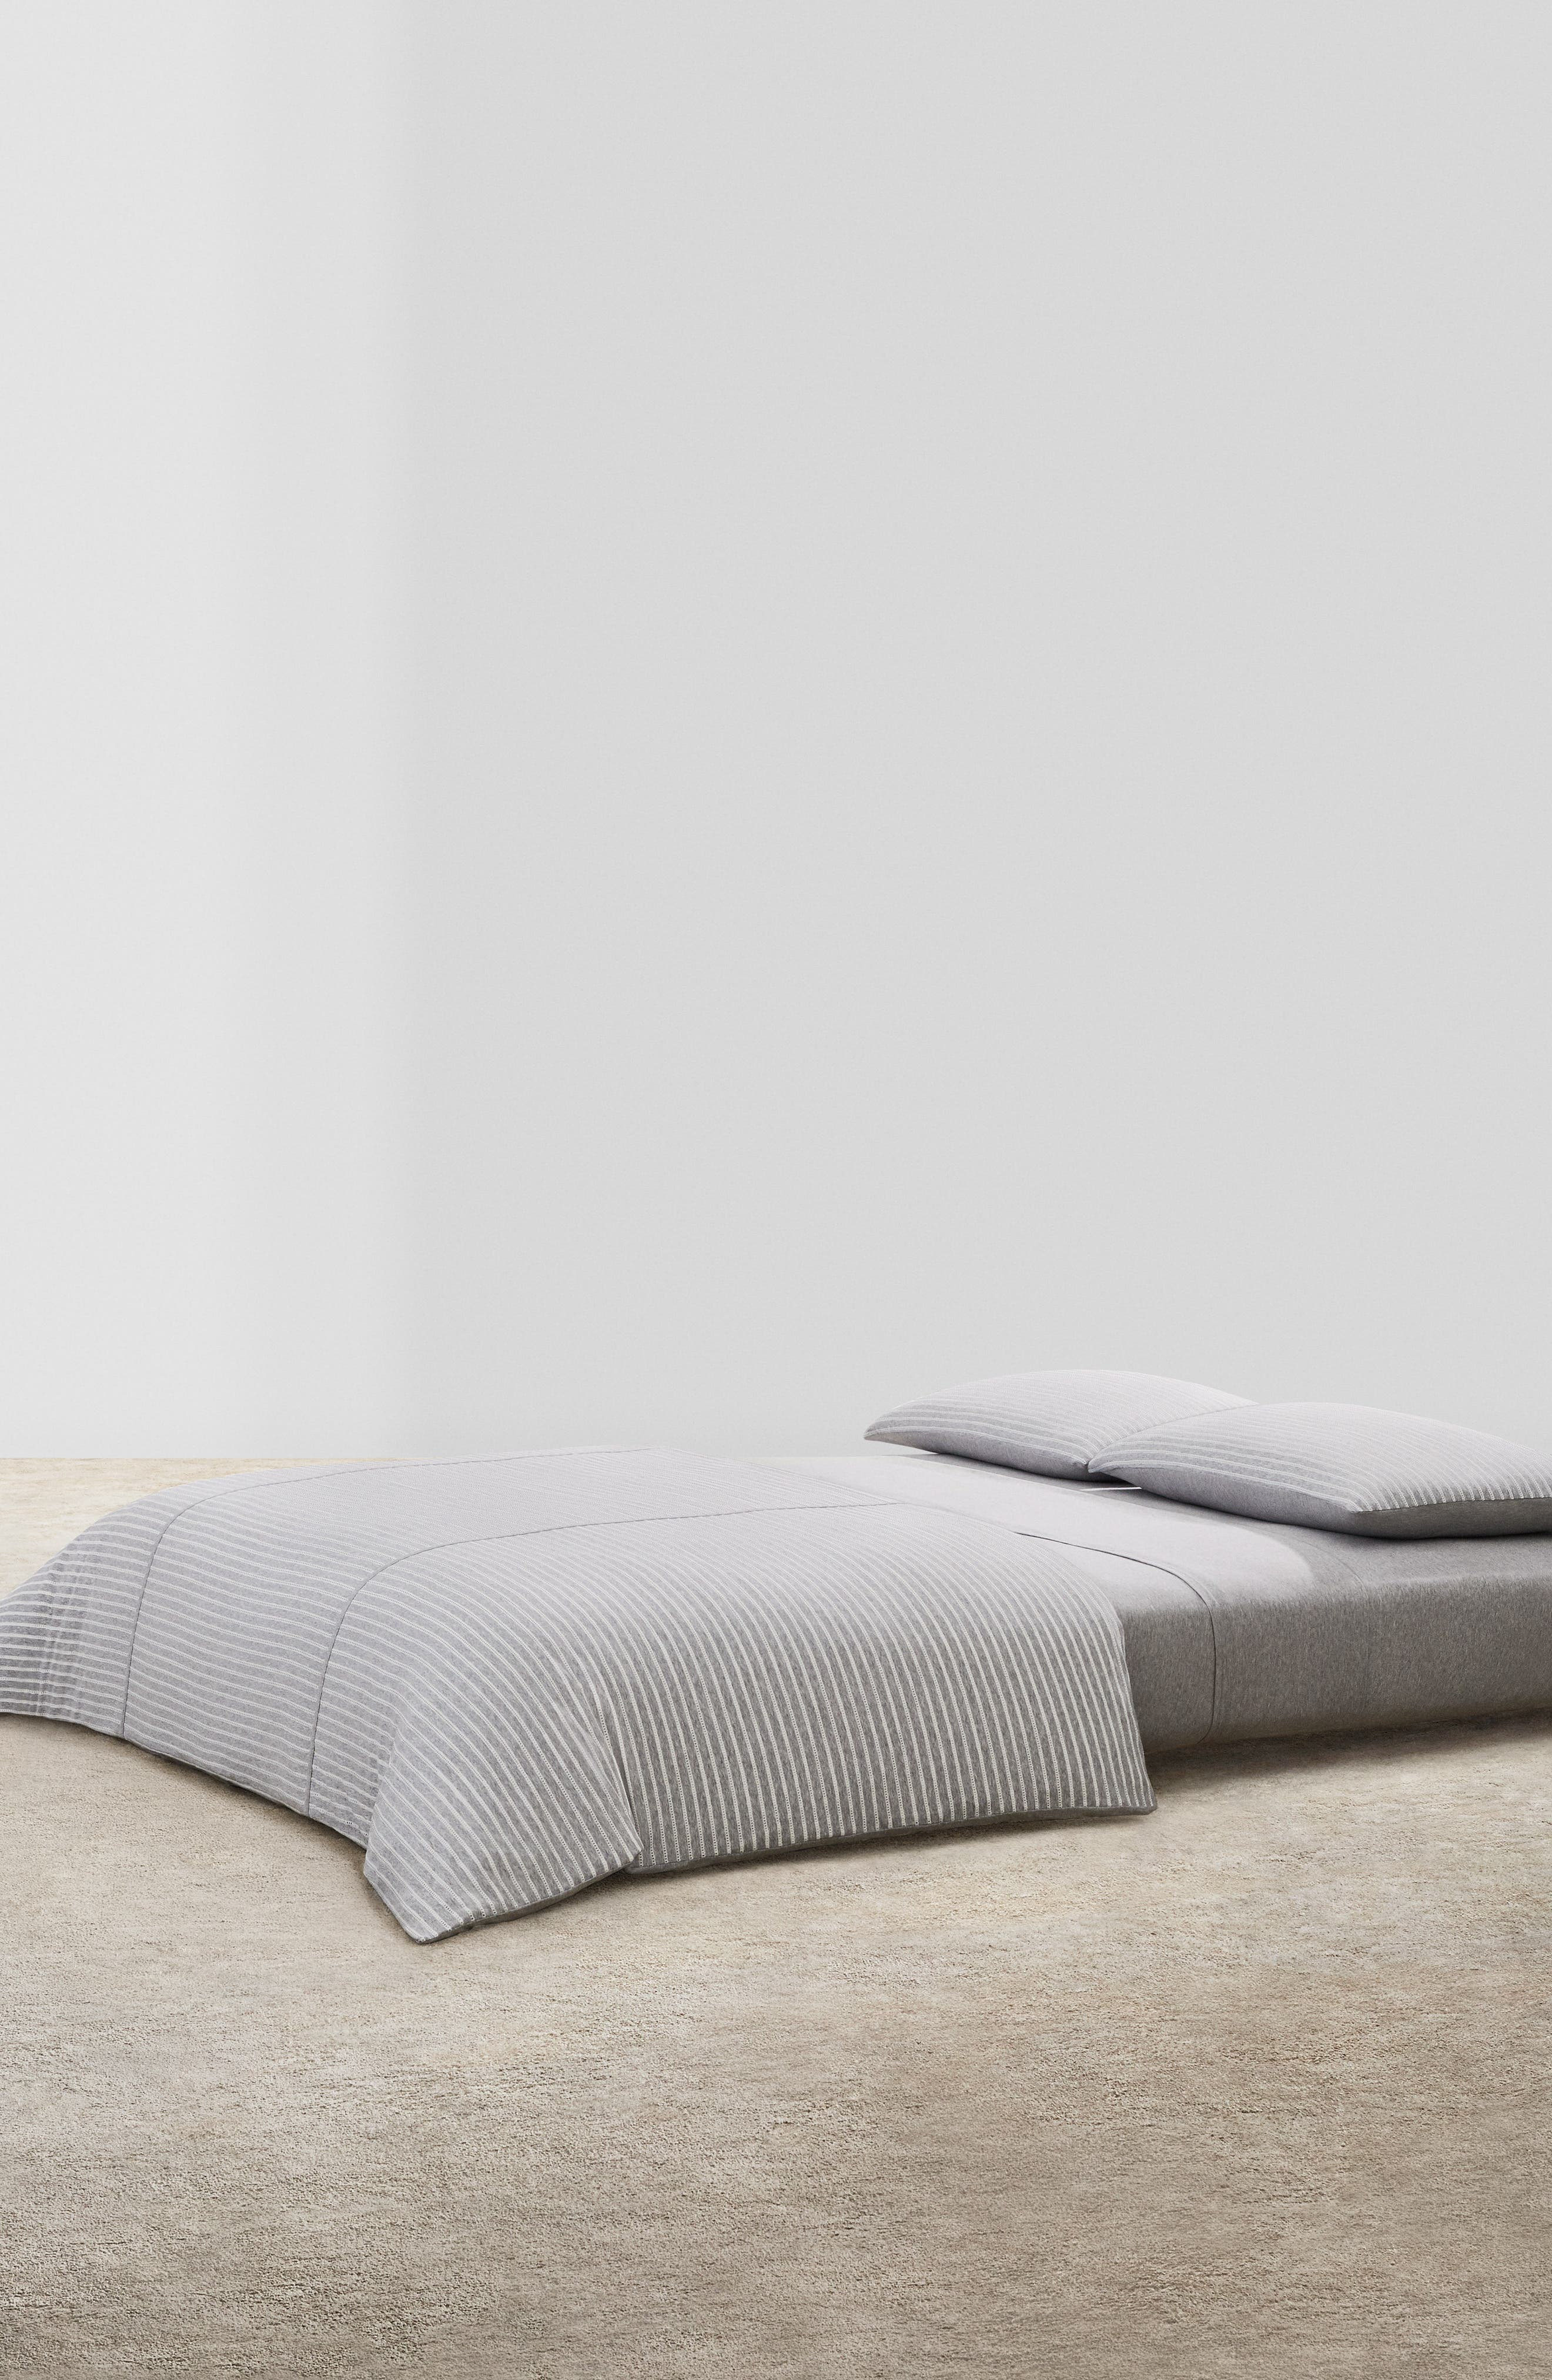 CALVIN KLEIN HOME Lennox Duvet Cover, Main, color, HEATHER GREY/ CREAM